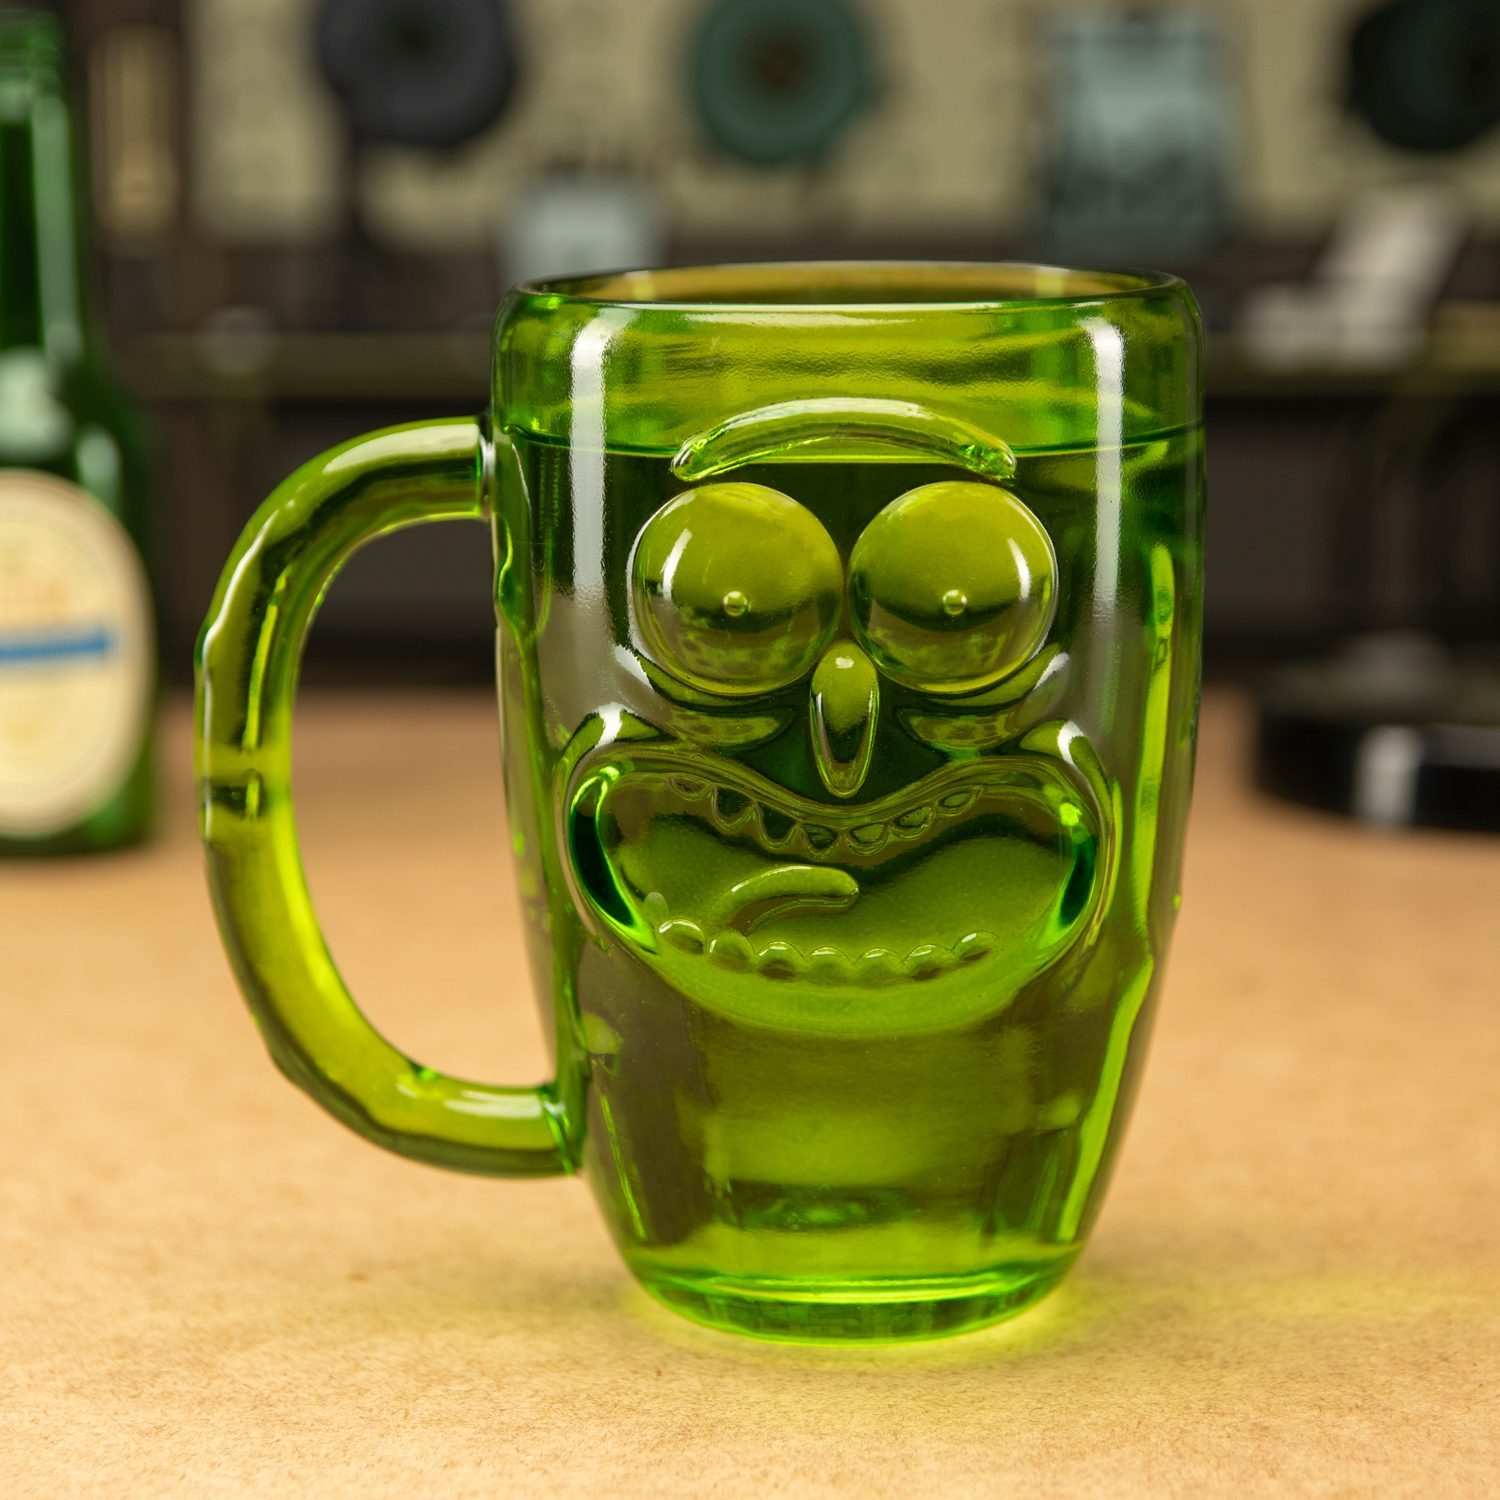 Rick and Morty Pickle Rick glas